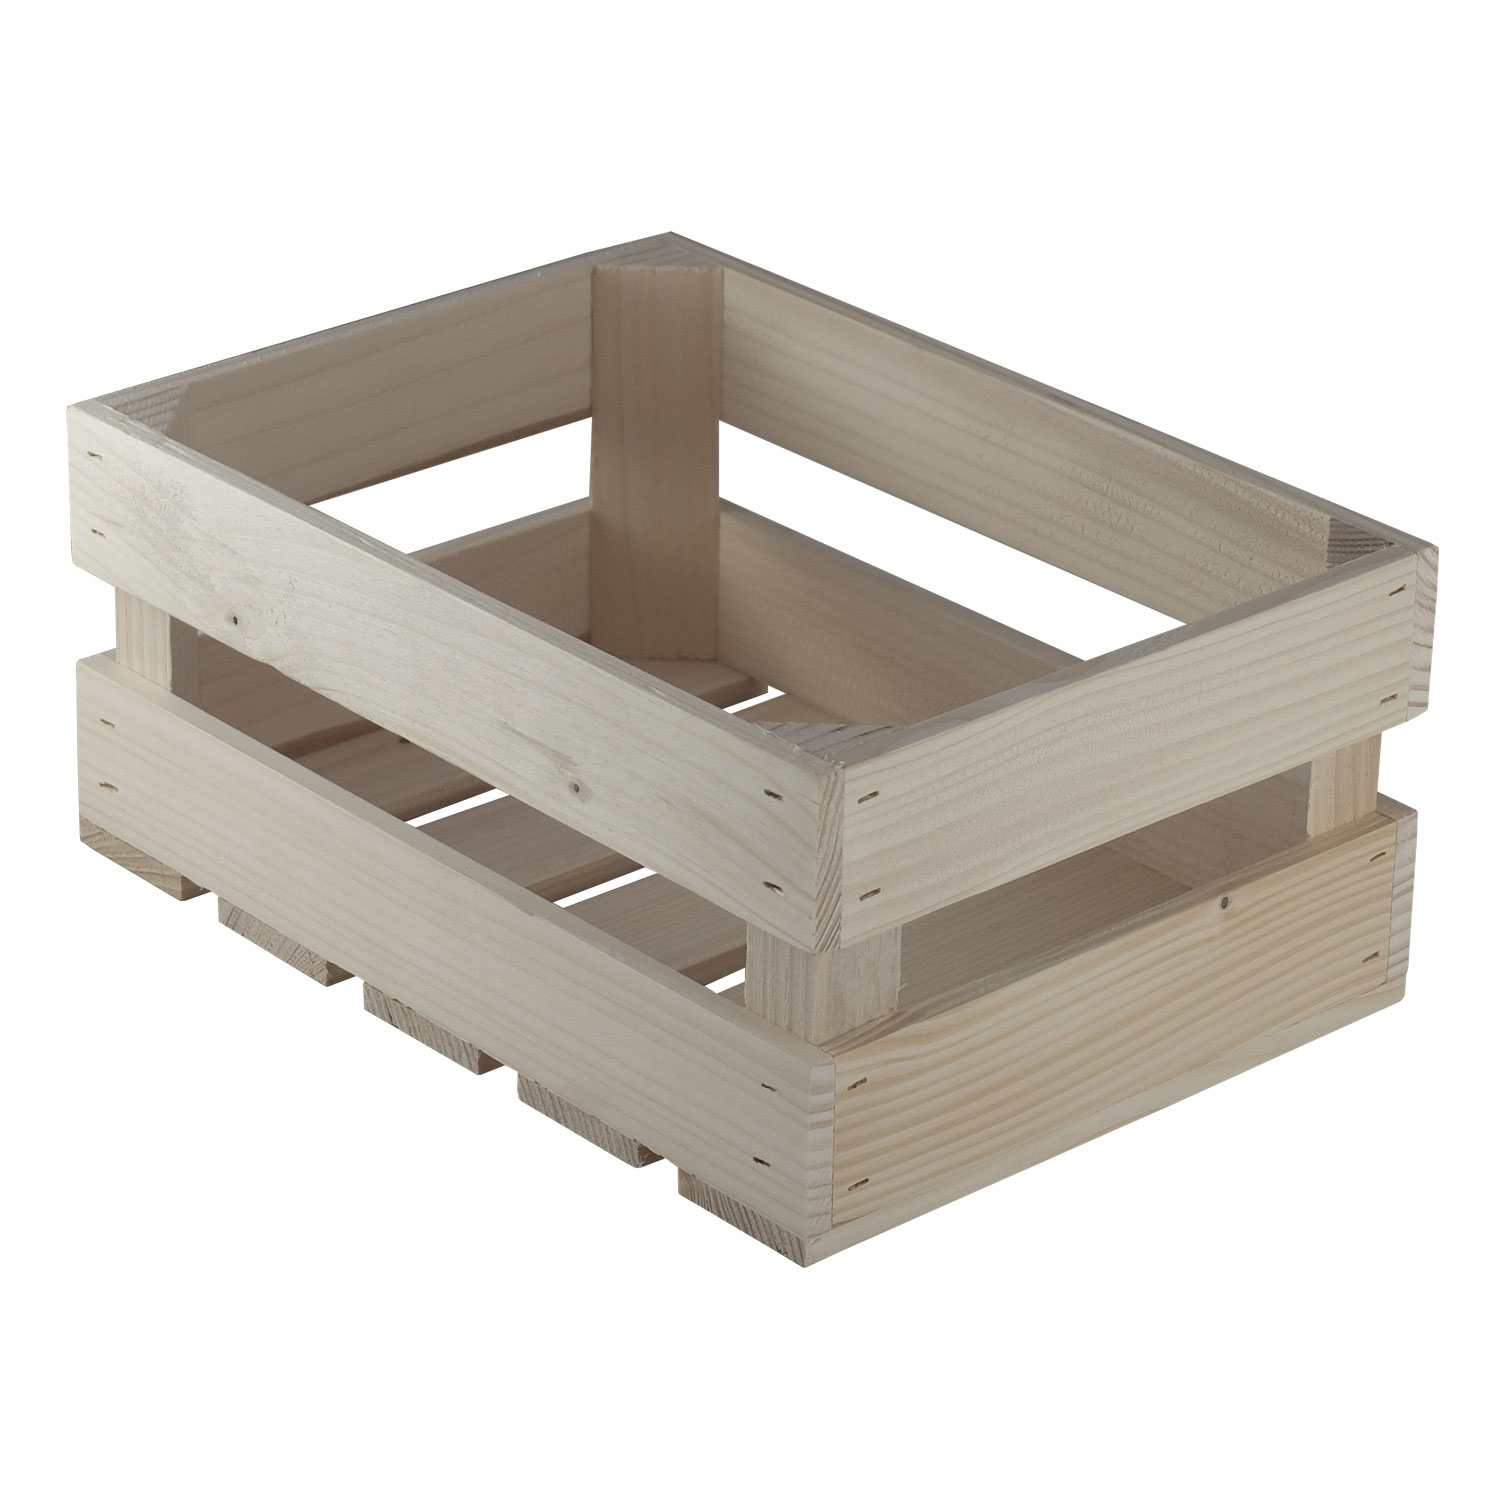 Wooden box for vegetables S005